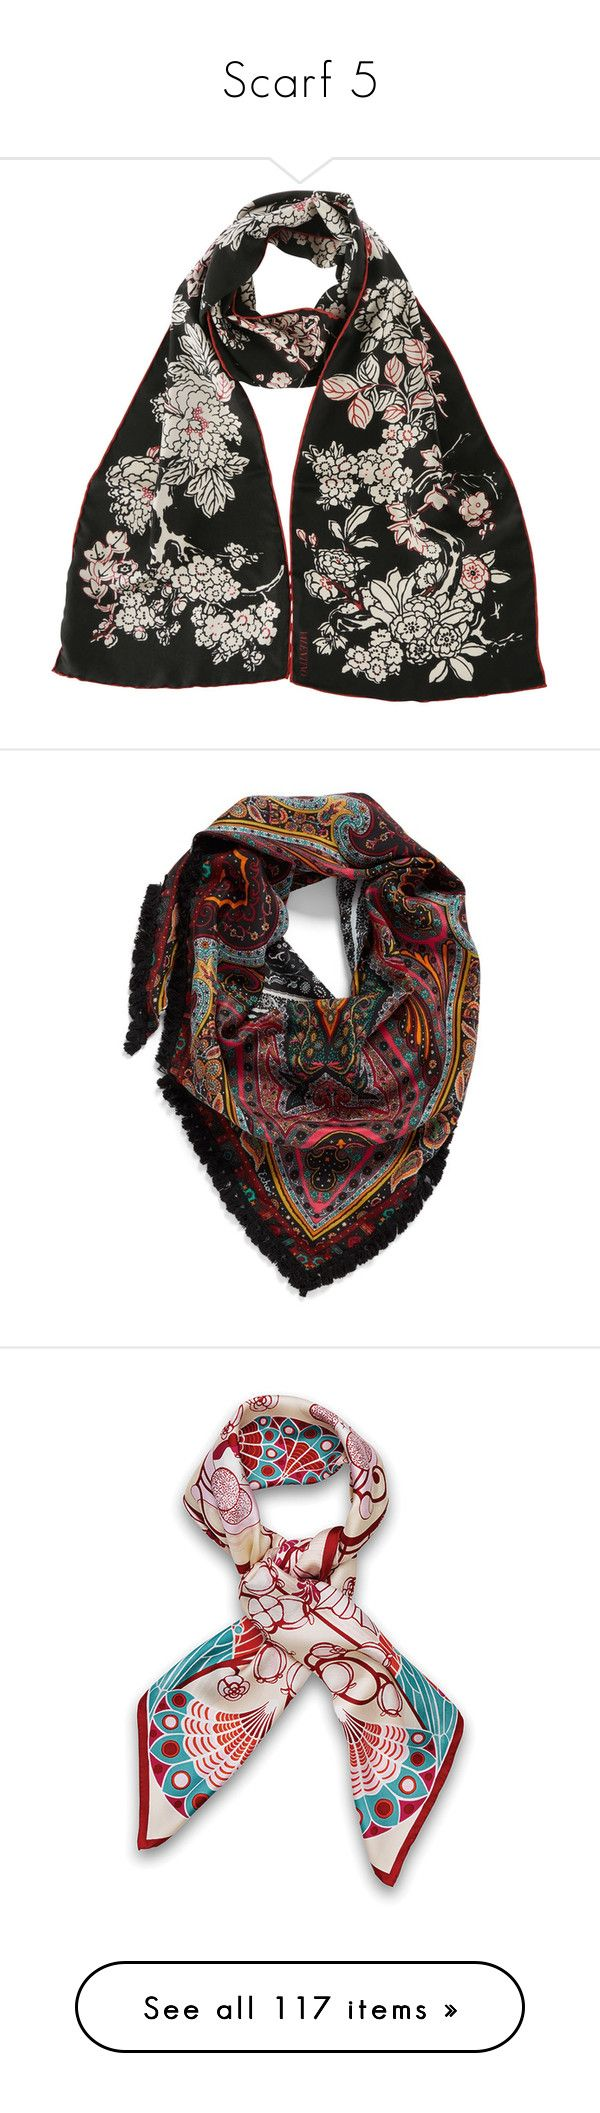 """""""Scarf 5"""" by dmiddleton ❤ liked on Polyvore featuring accessories, scarves, black, patterned scarves, print scarves, valentino scarves, multi, paisley shawl, echo scarves and triangle shawl"""